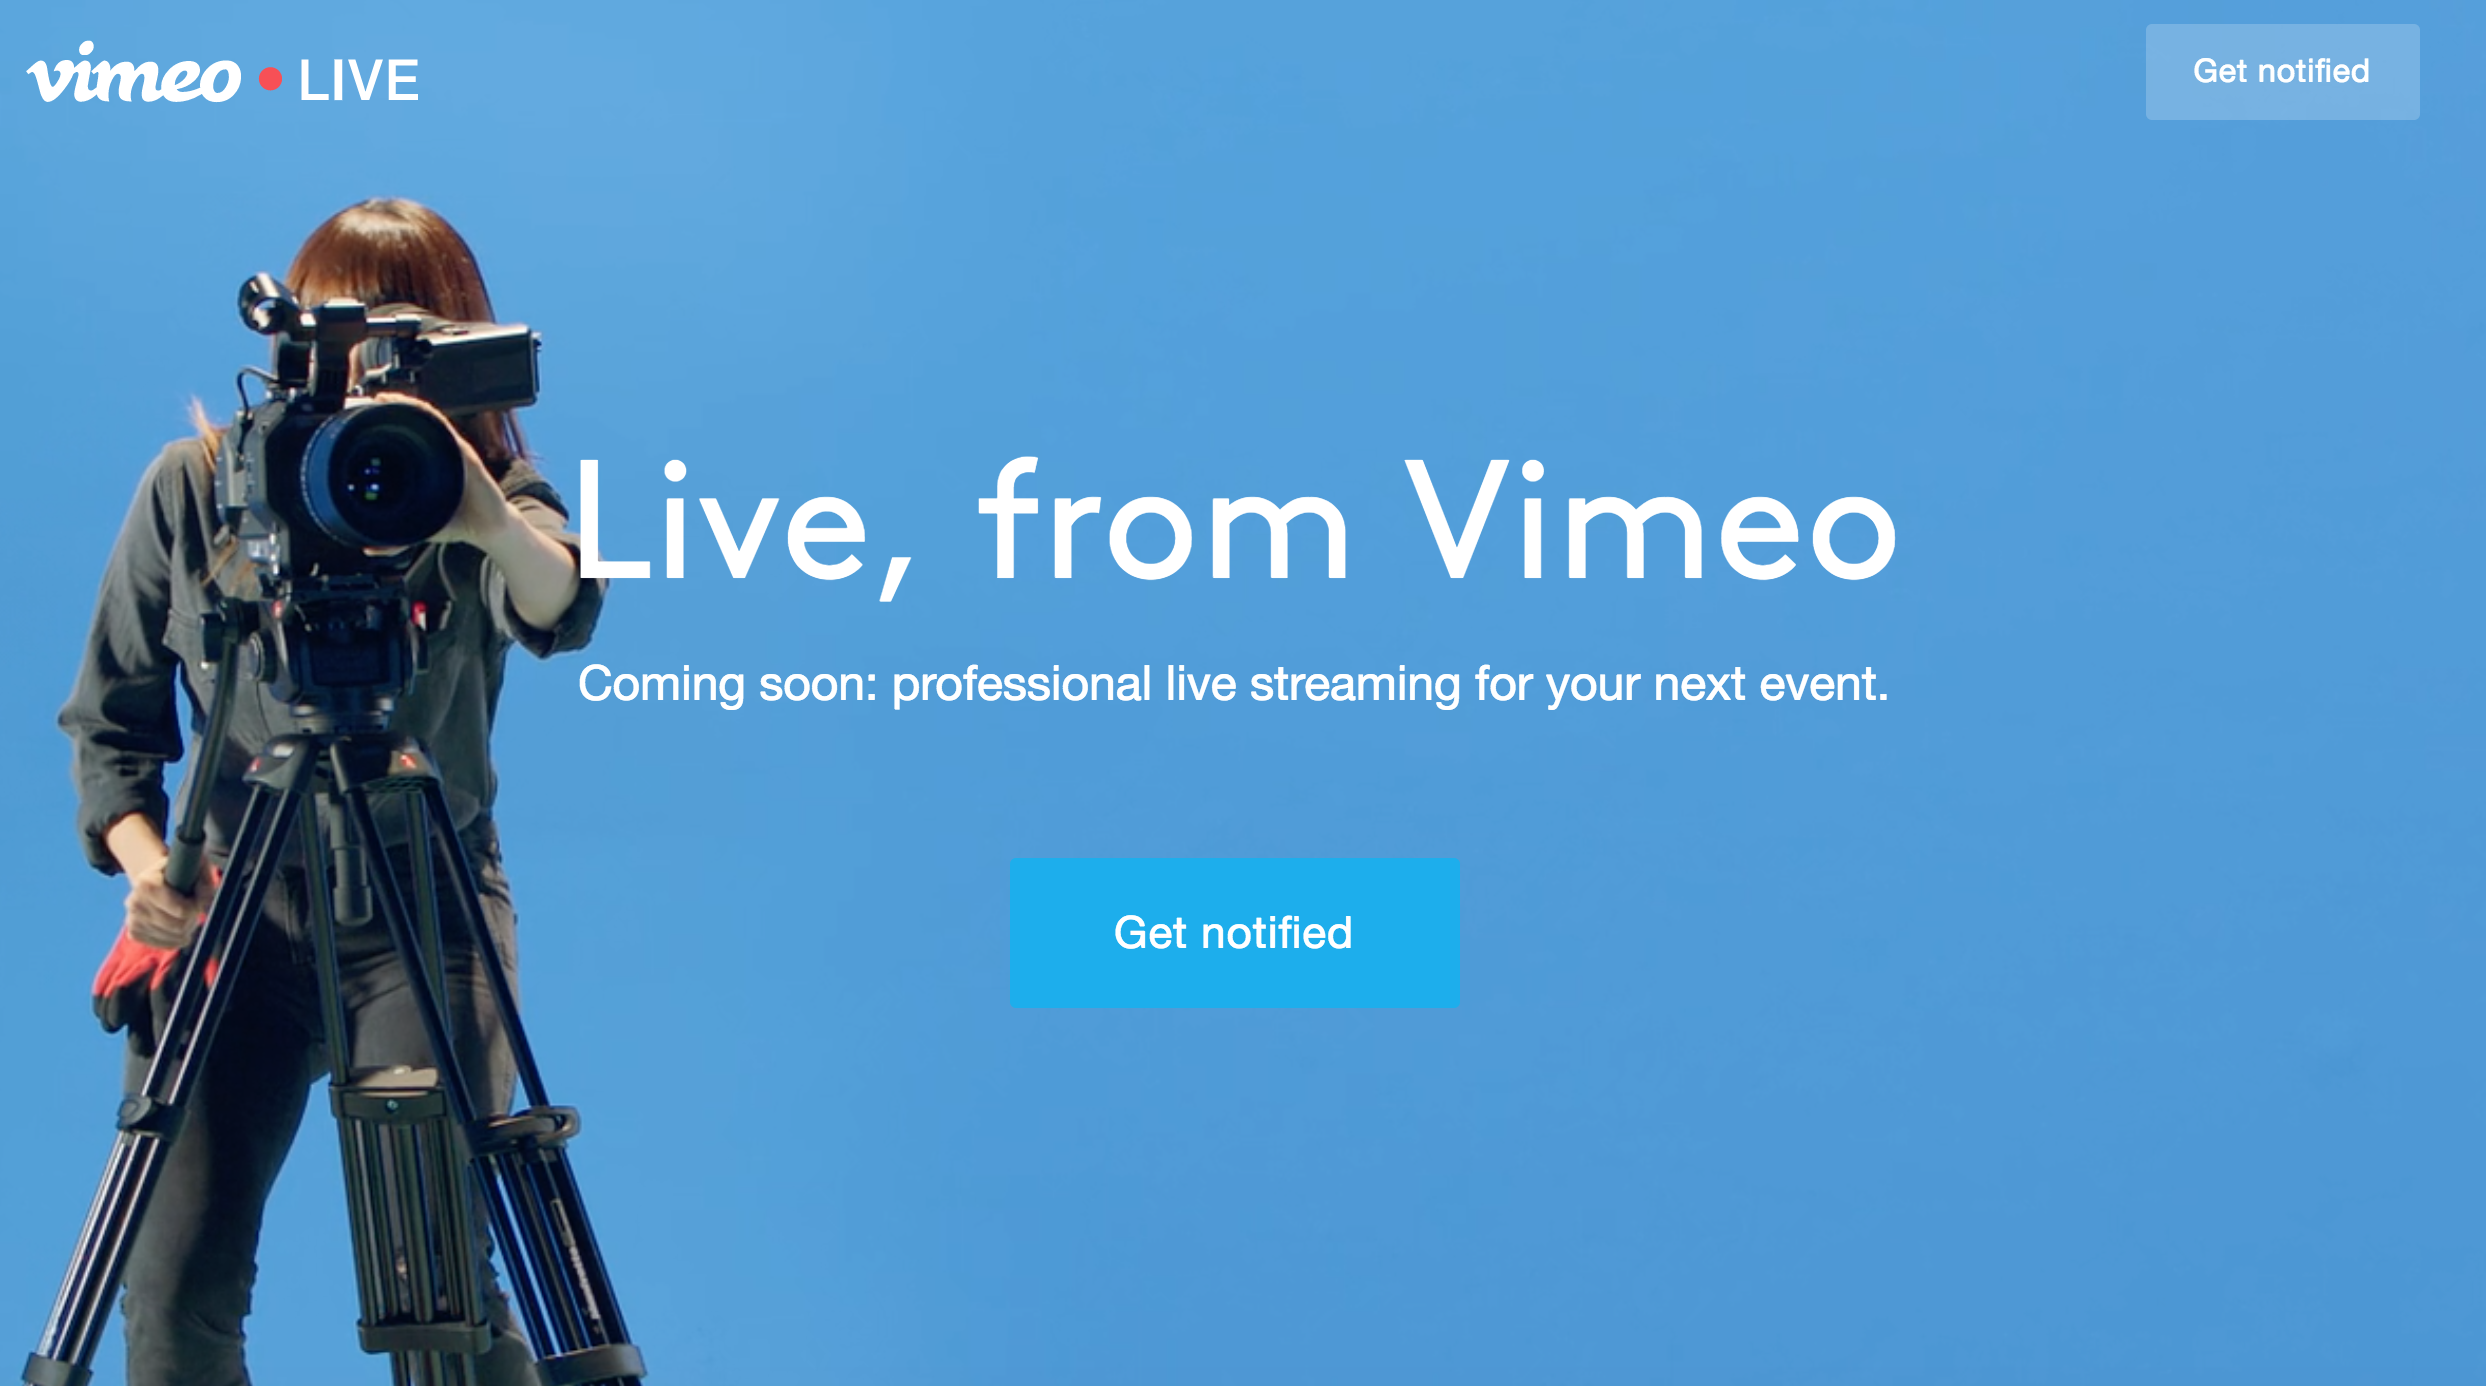 Vimeo acquires Livestream, launches its own live video product